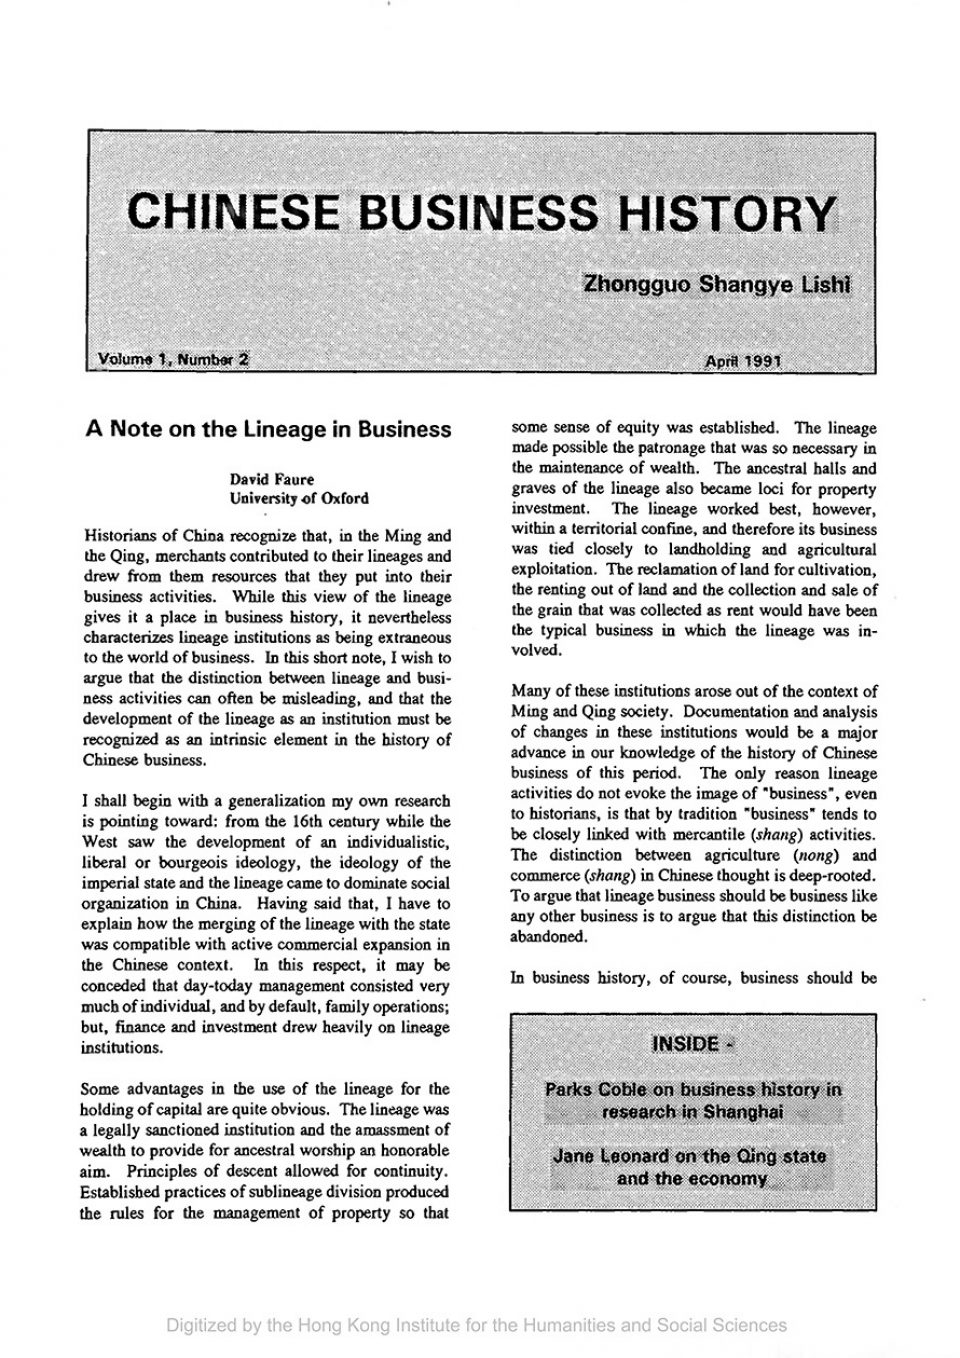 Cover of Chinese Business History Journal Volume 1, Number 2